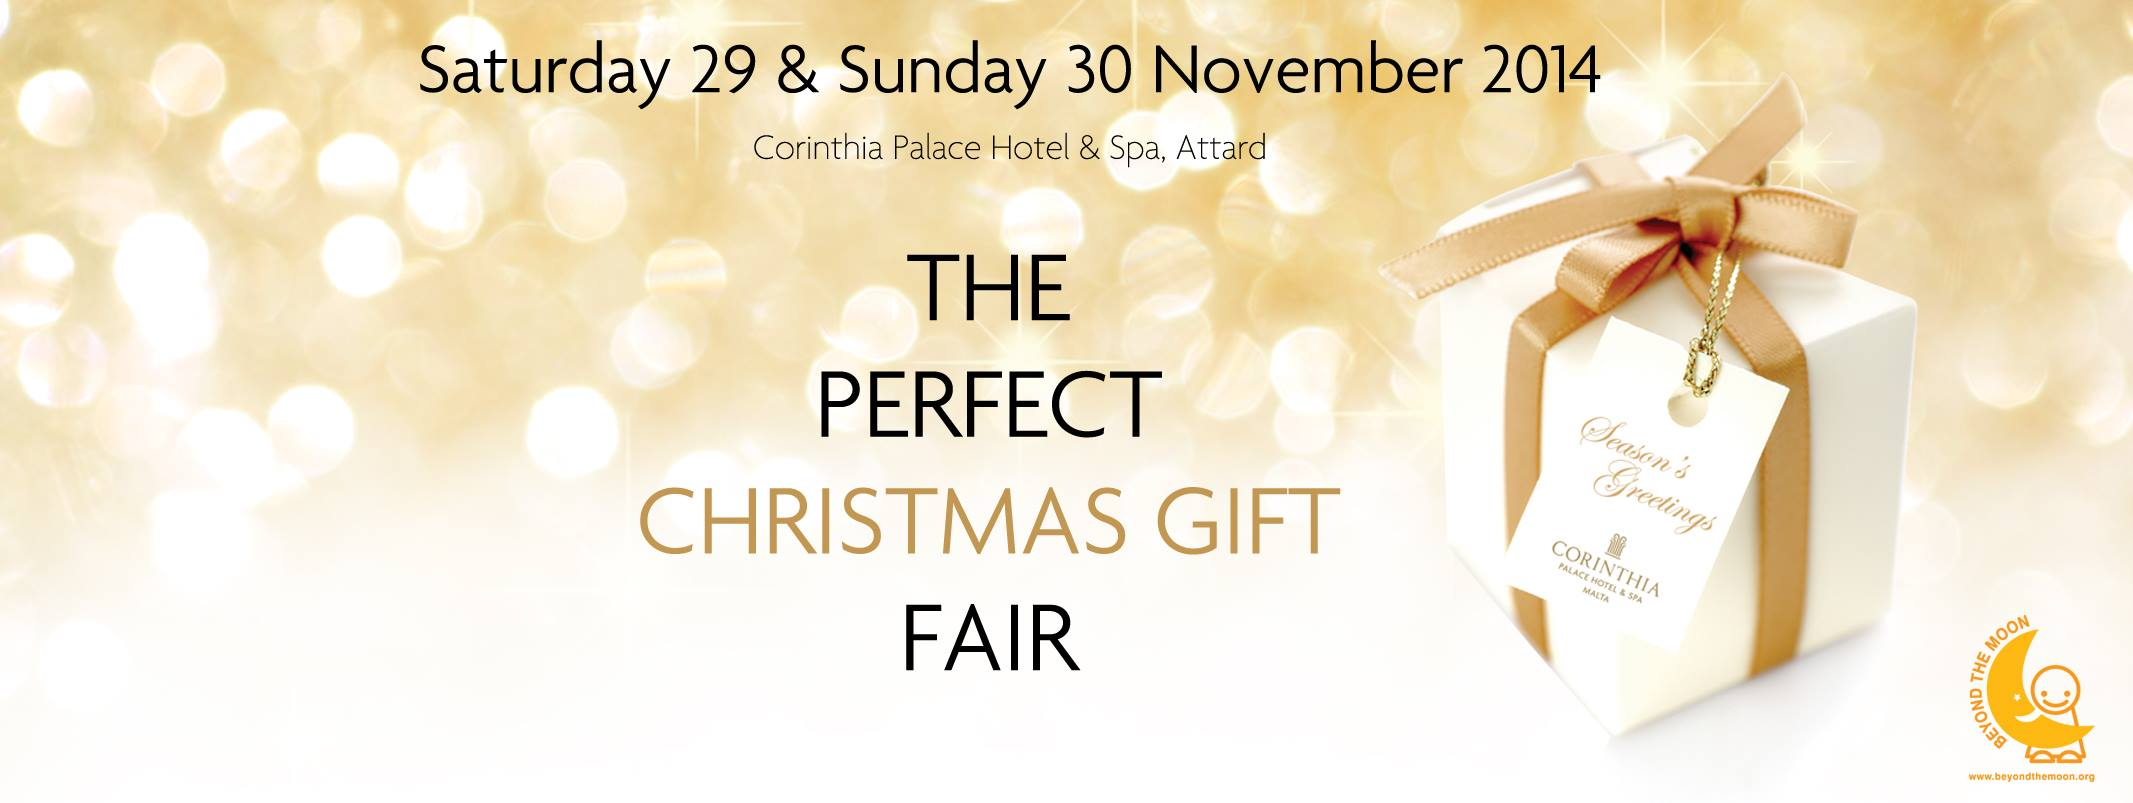 The Perfect Christmas Gift Fair event